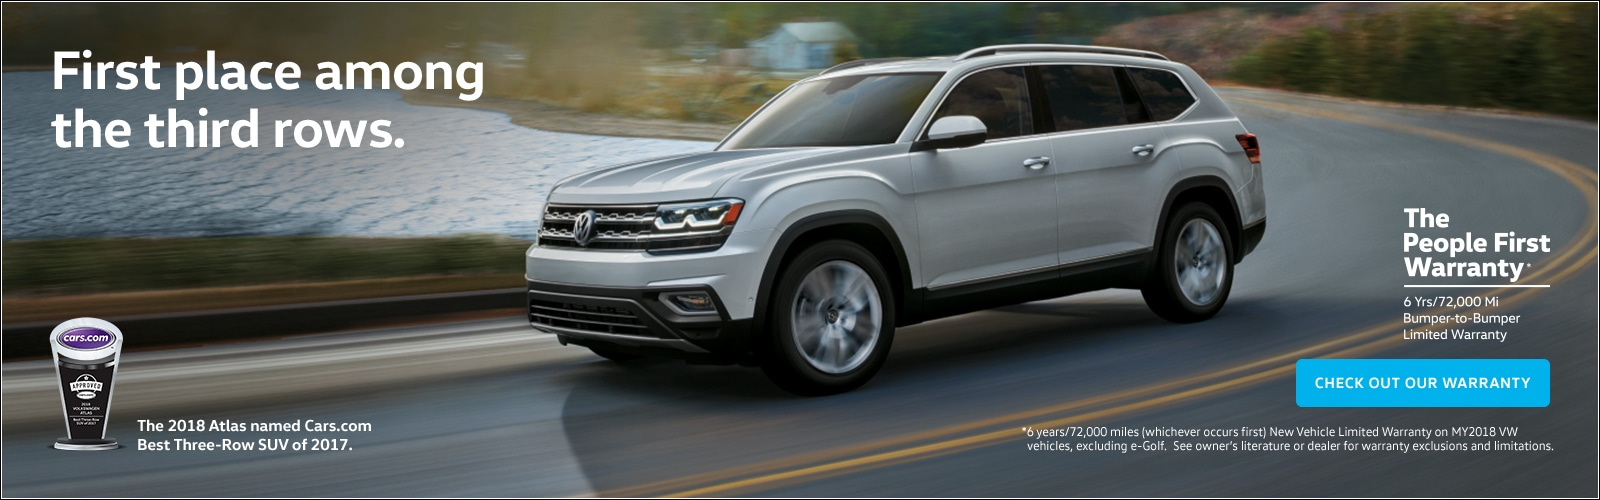 New Used Volkswagen Vehicles Indianapolis IN VW Dealer - Volkswagen dealership indianapolis